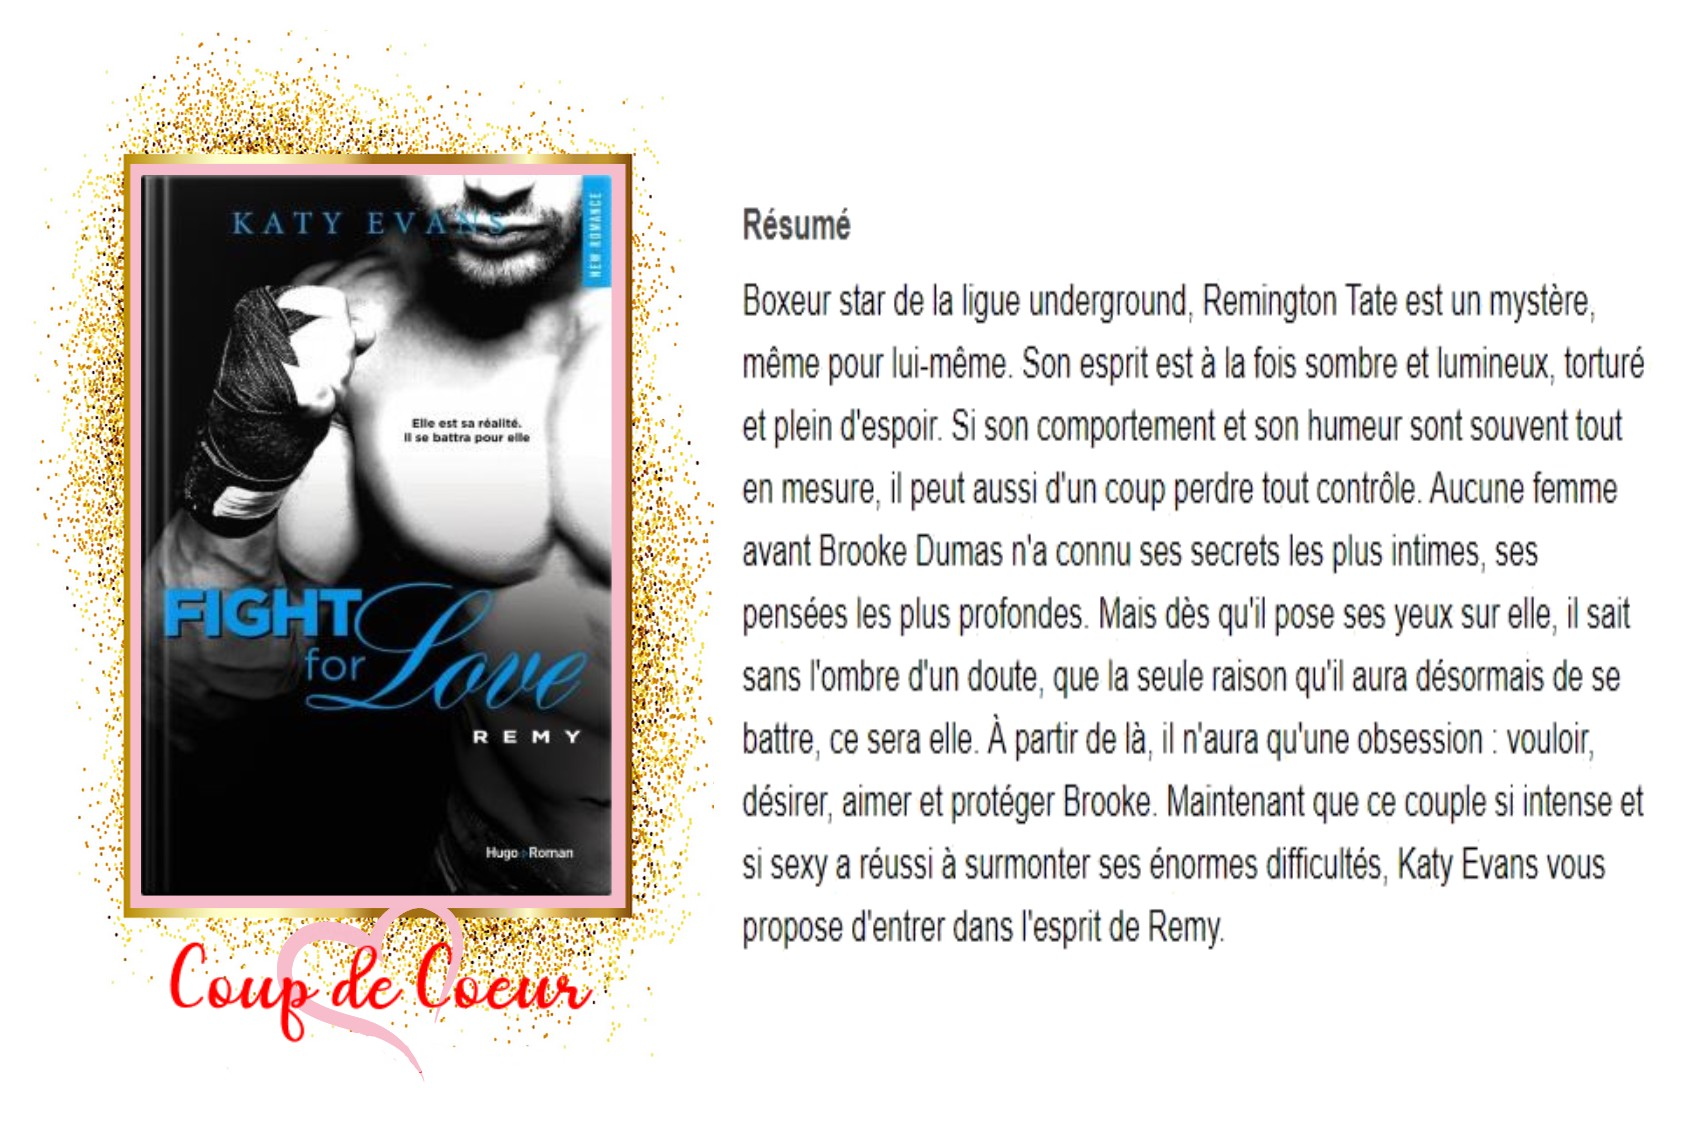 Fight for love , tome 3 remy avis